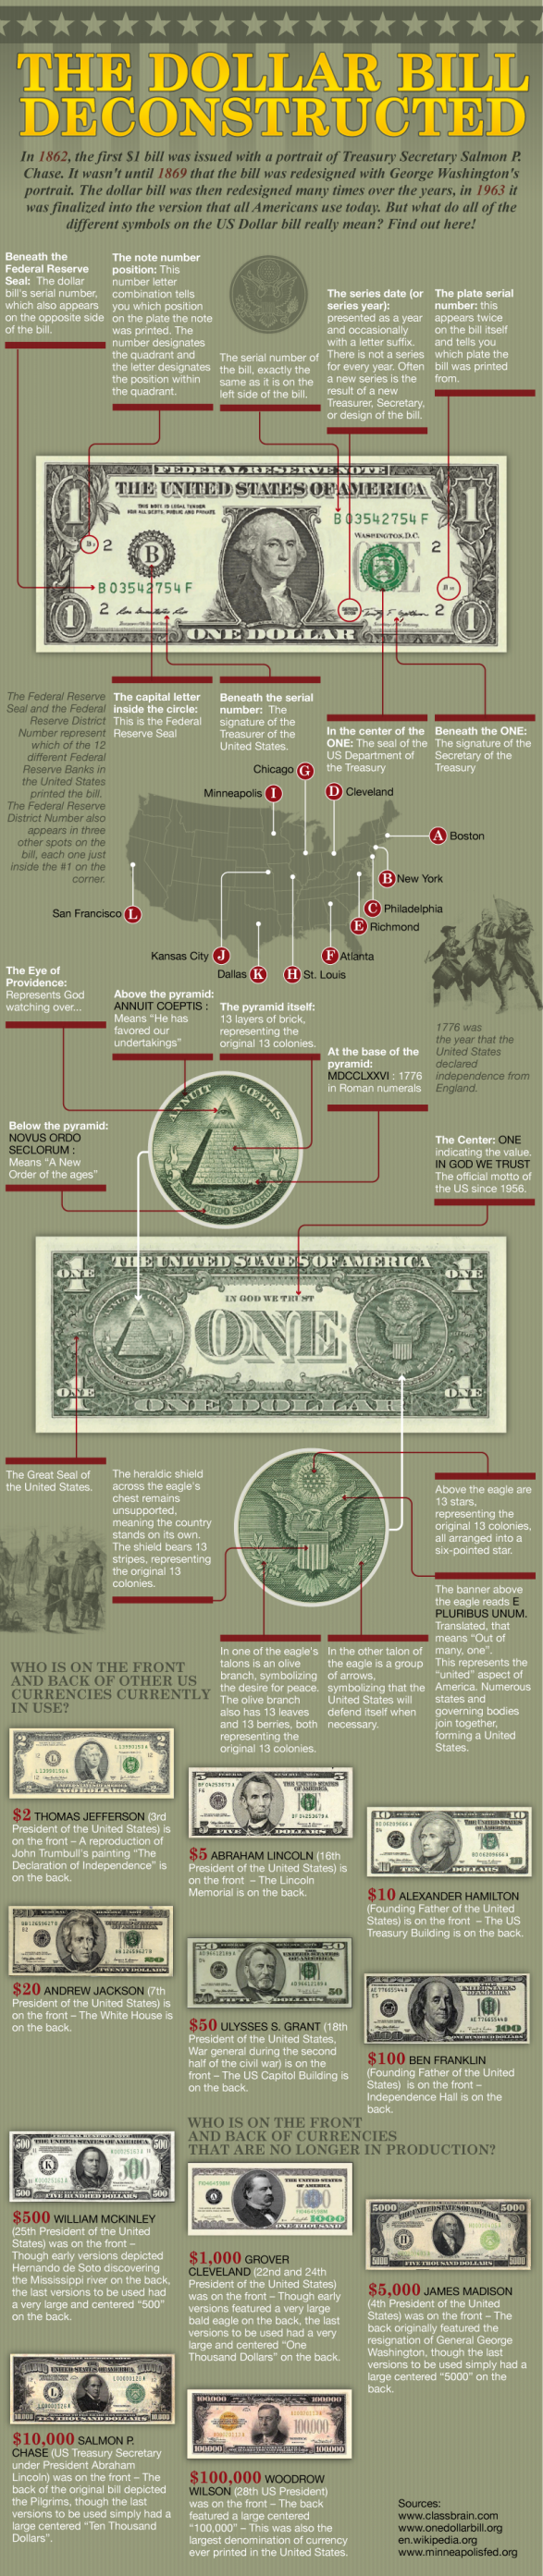 The Dollar Bill Deconstructed